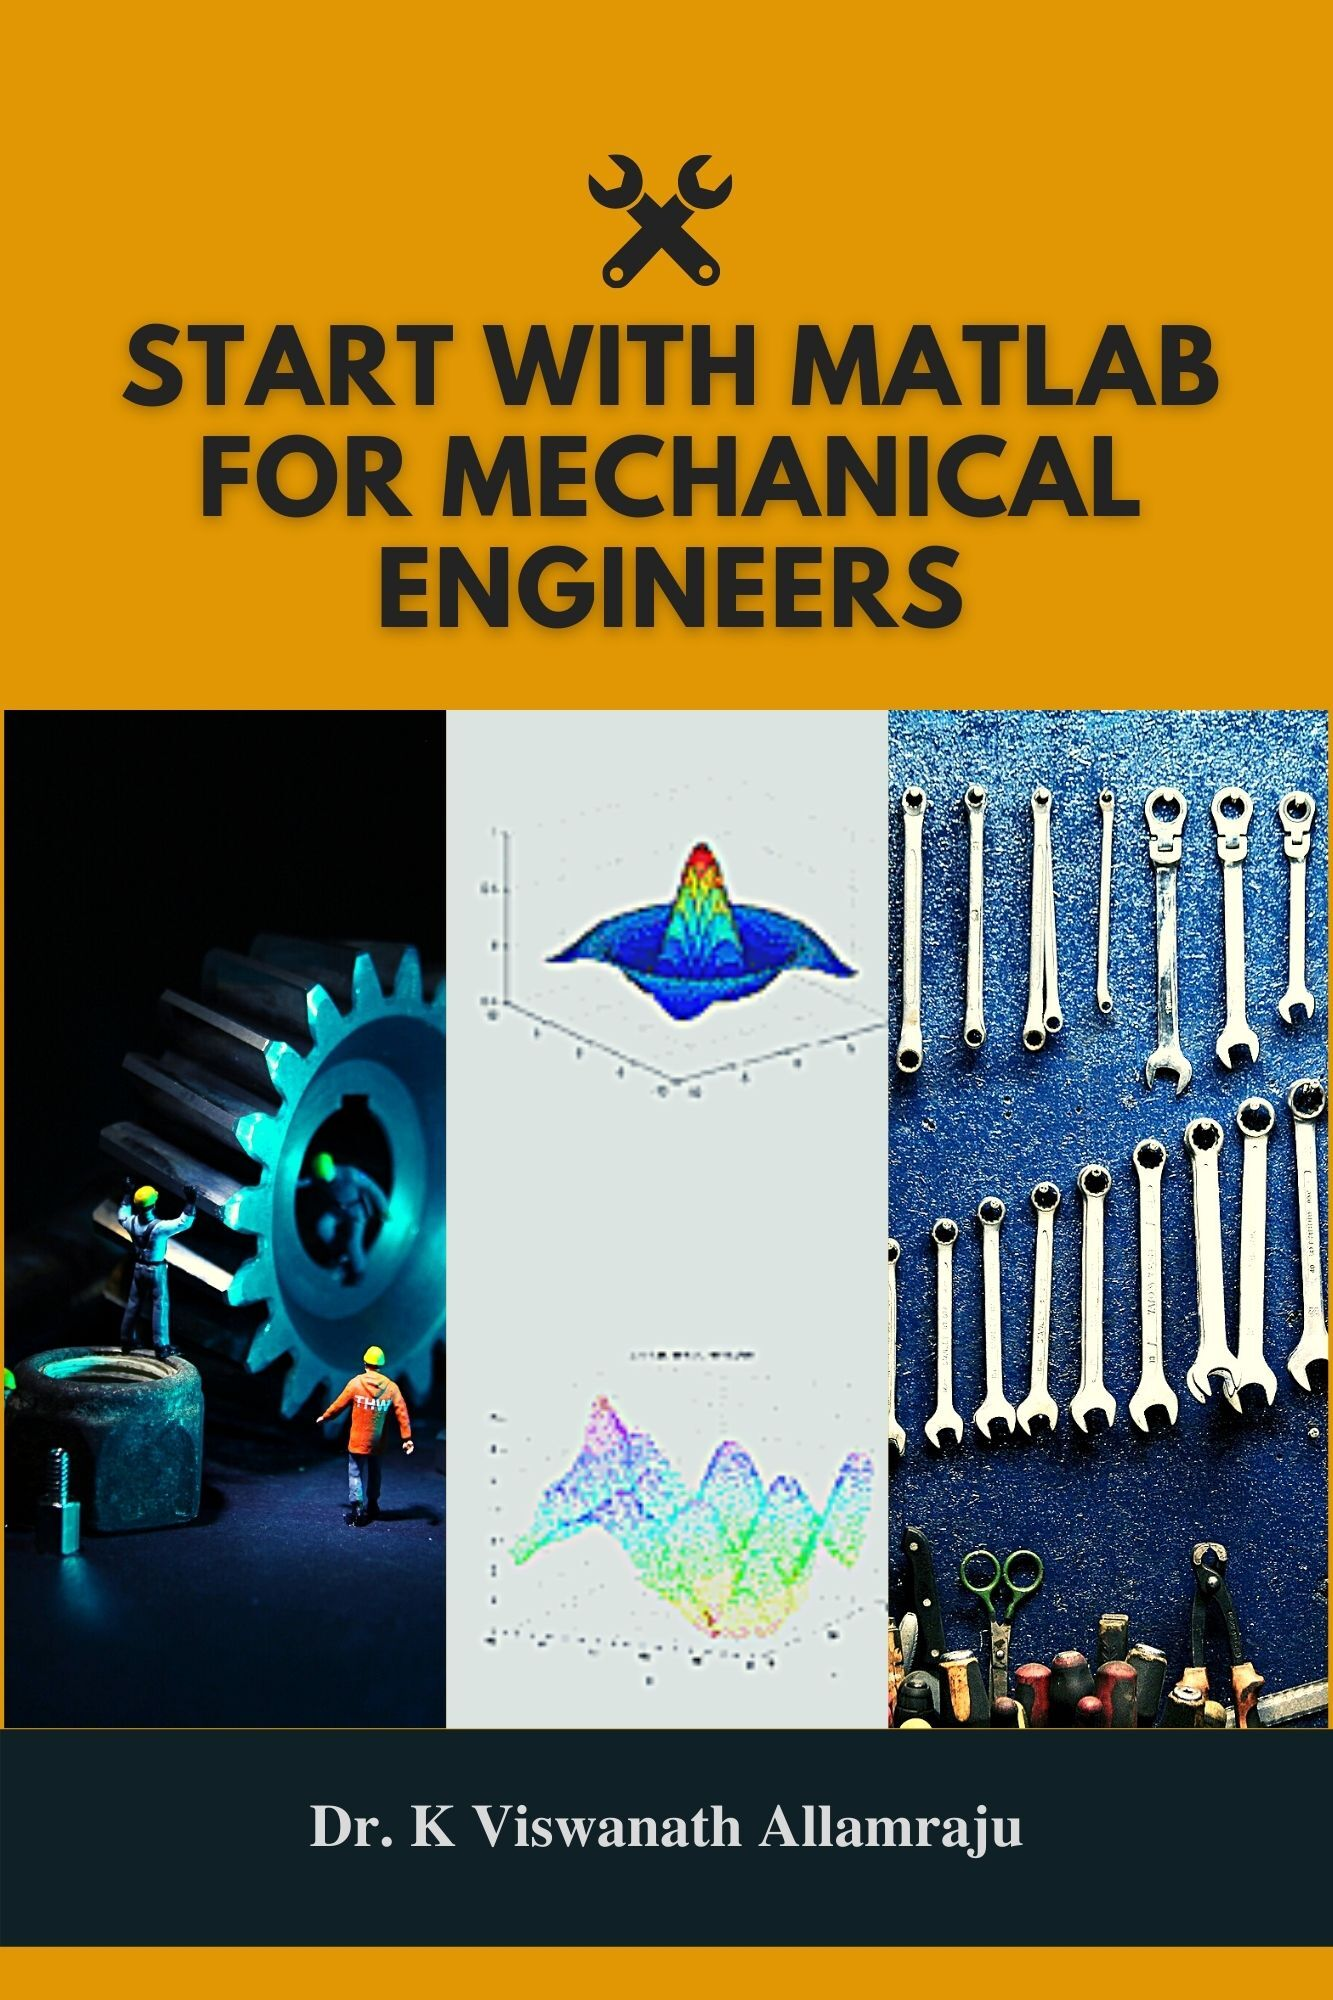 Start with Matlab for mechanical engineers